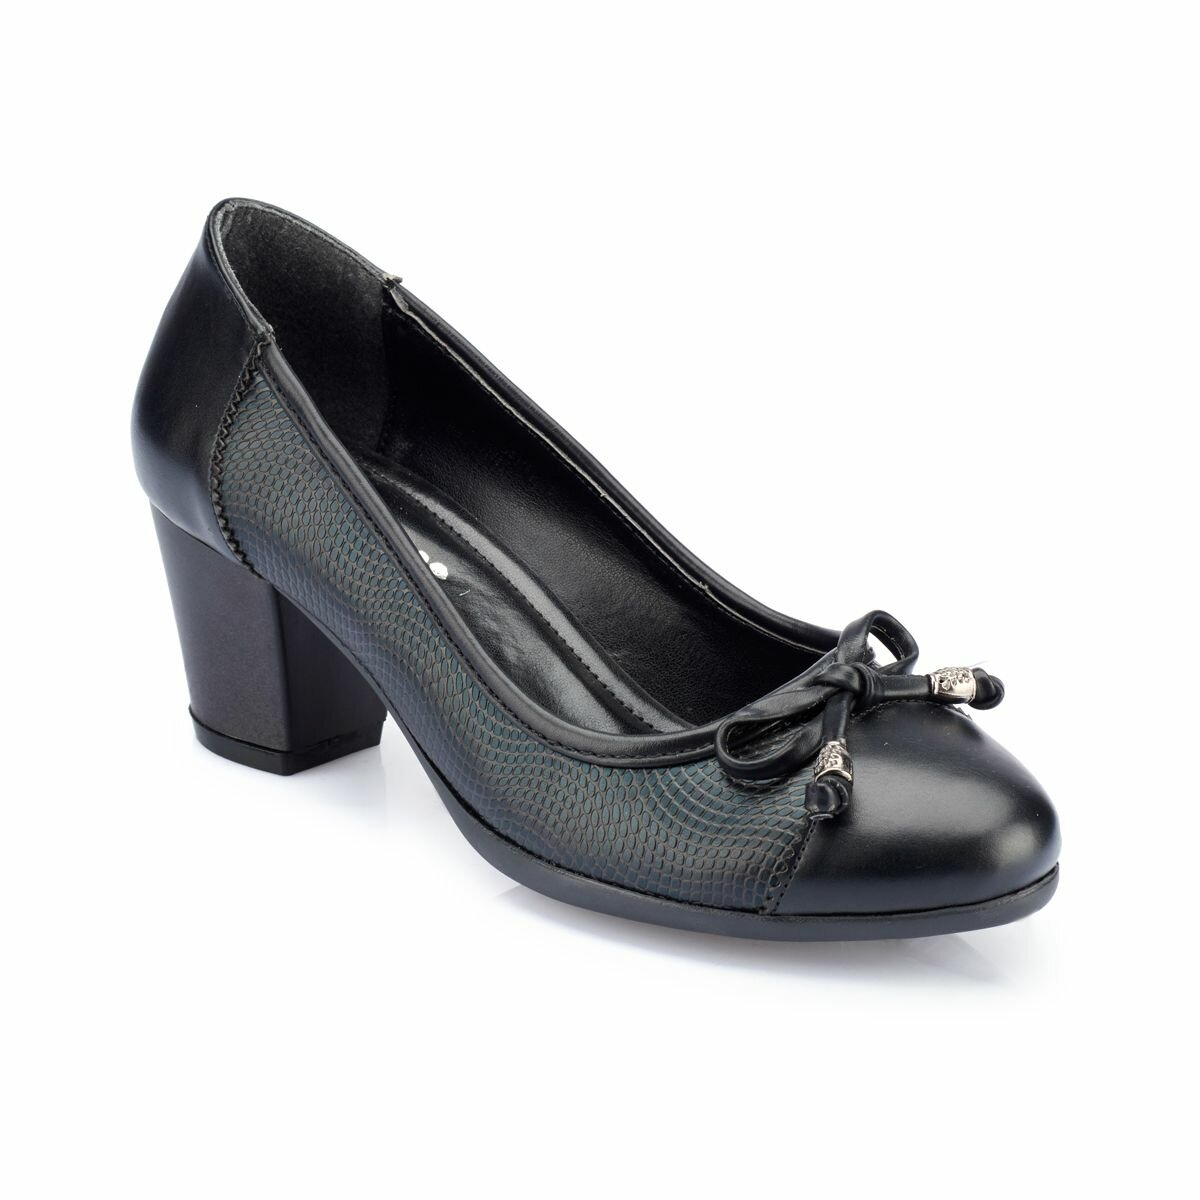 FLO 82.312088.Z Black Women Gova Shoes Polaris